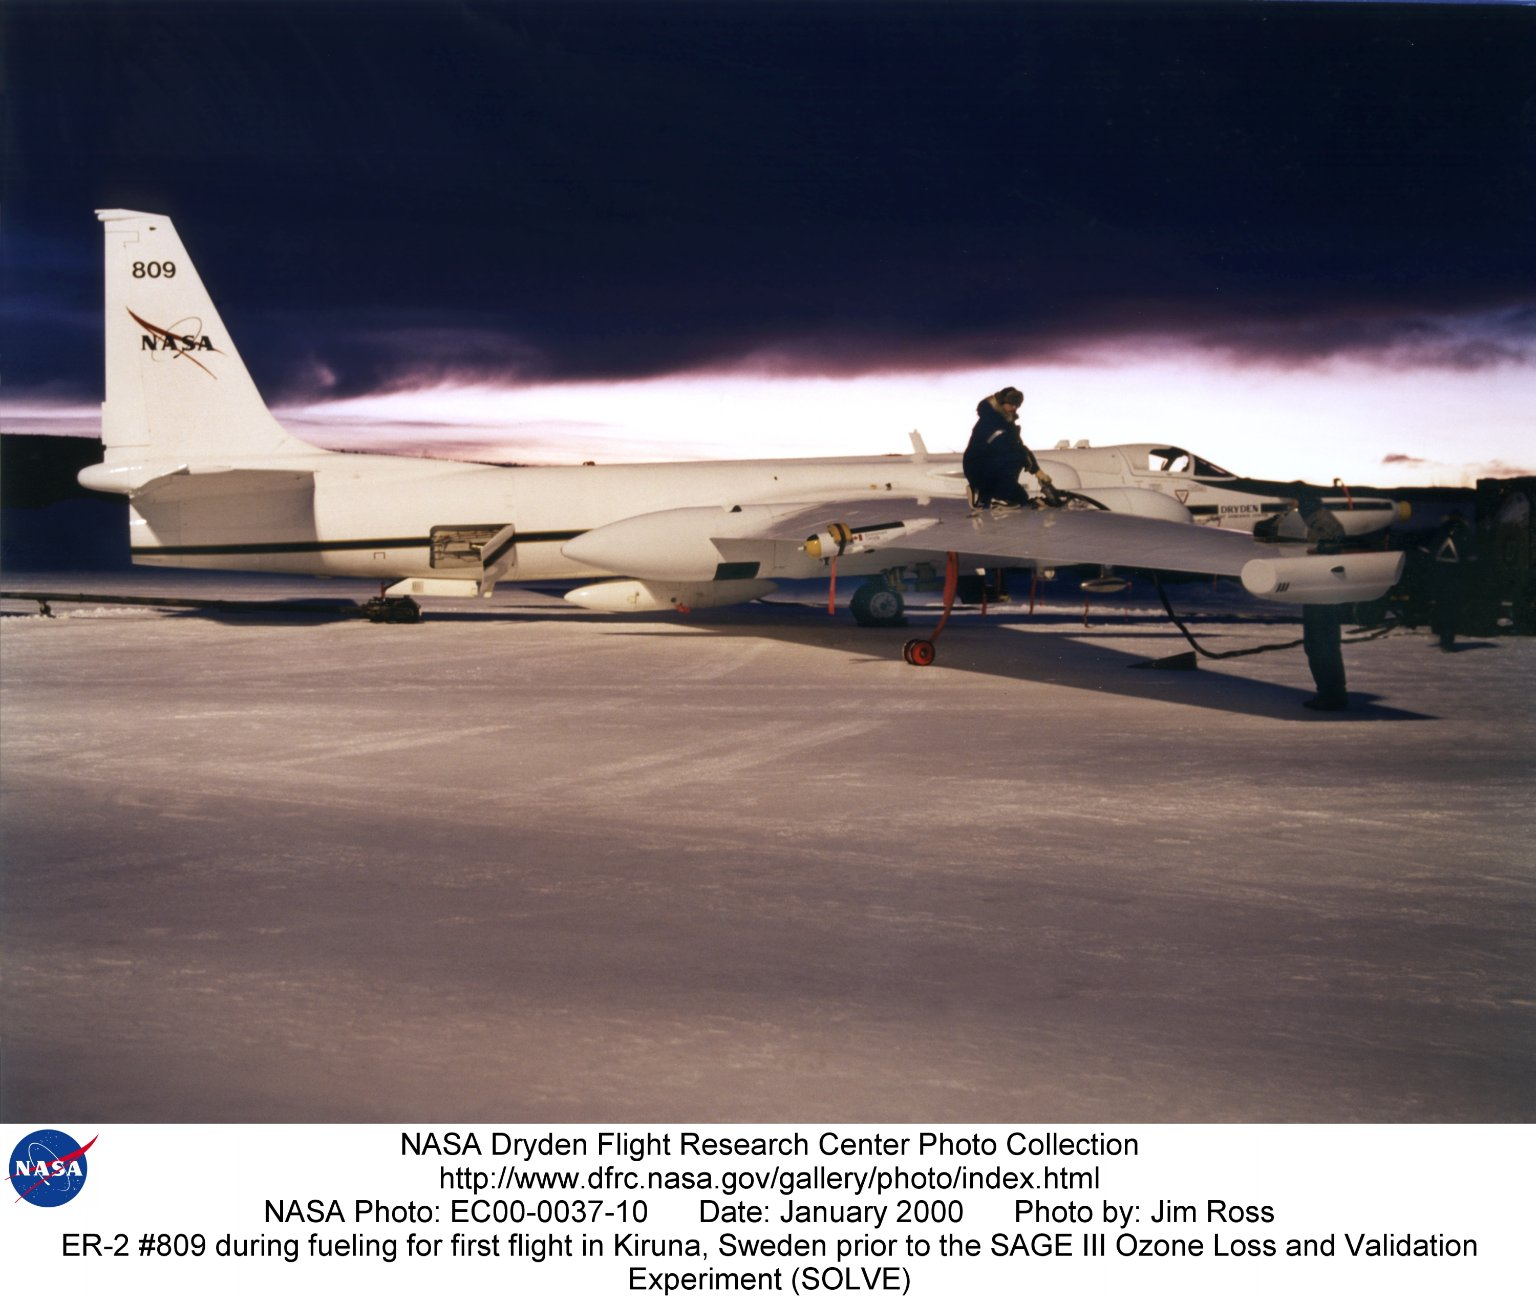 ER-2 #809 during fueling for first flight in Kiruna, Sweden prior to the SAGE III Ozone Loss and Val